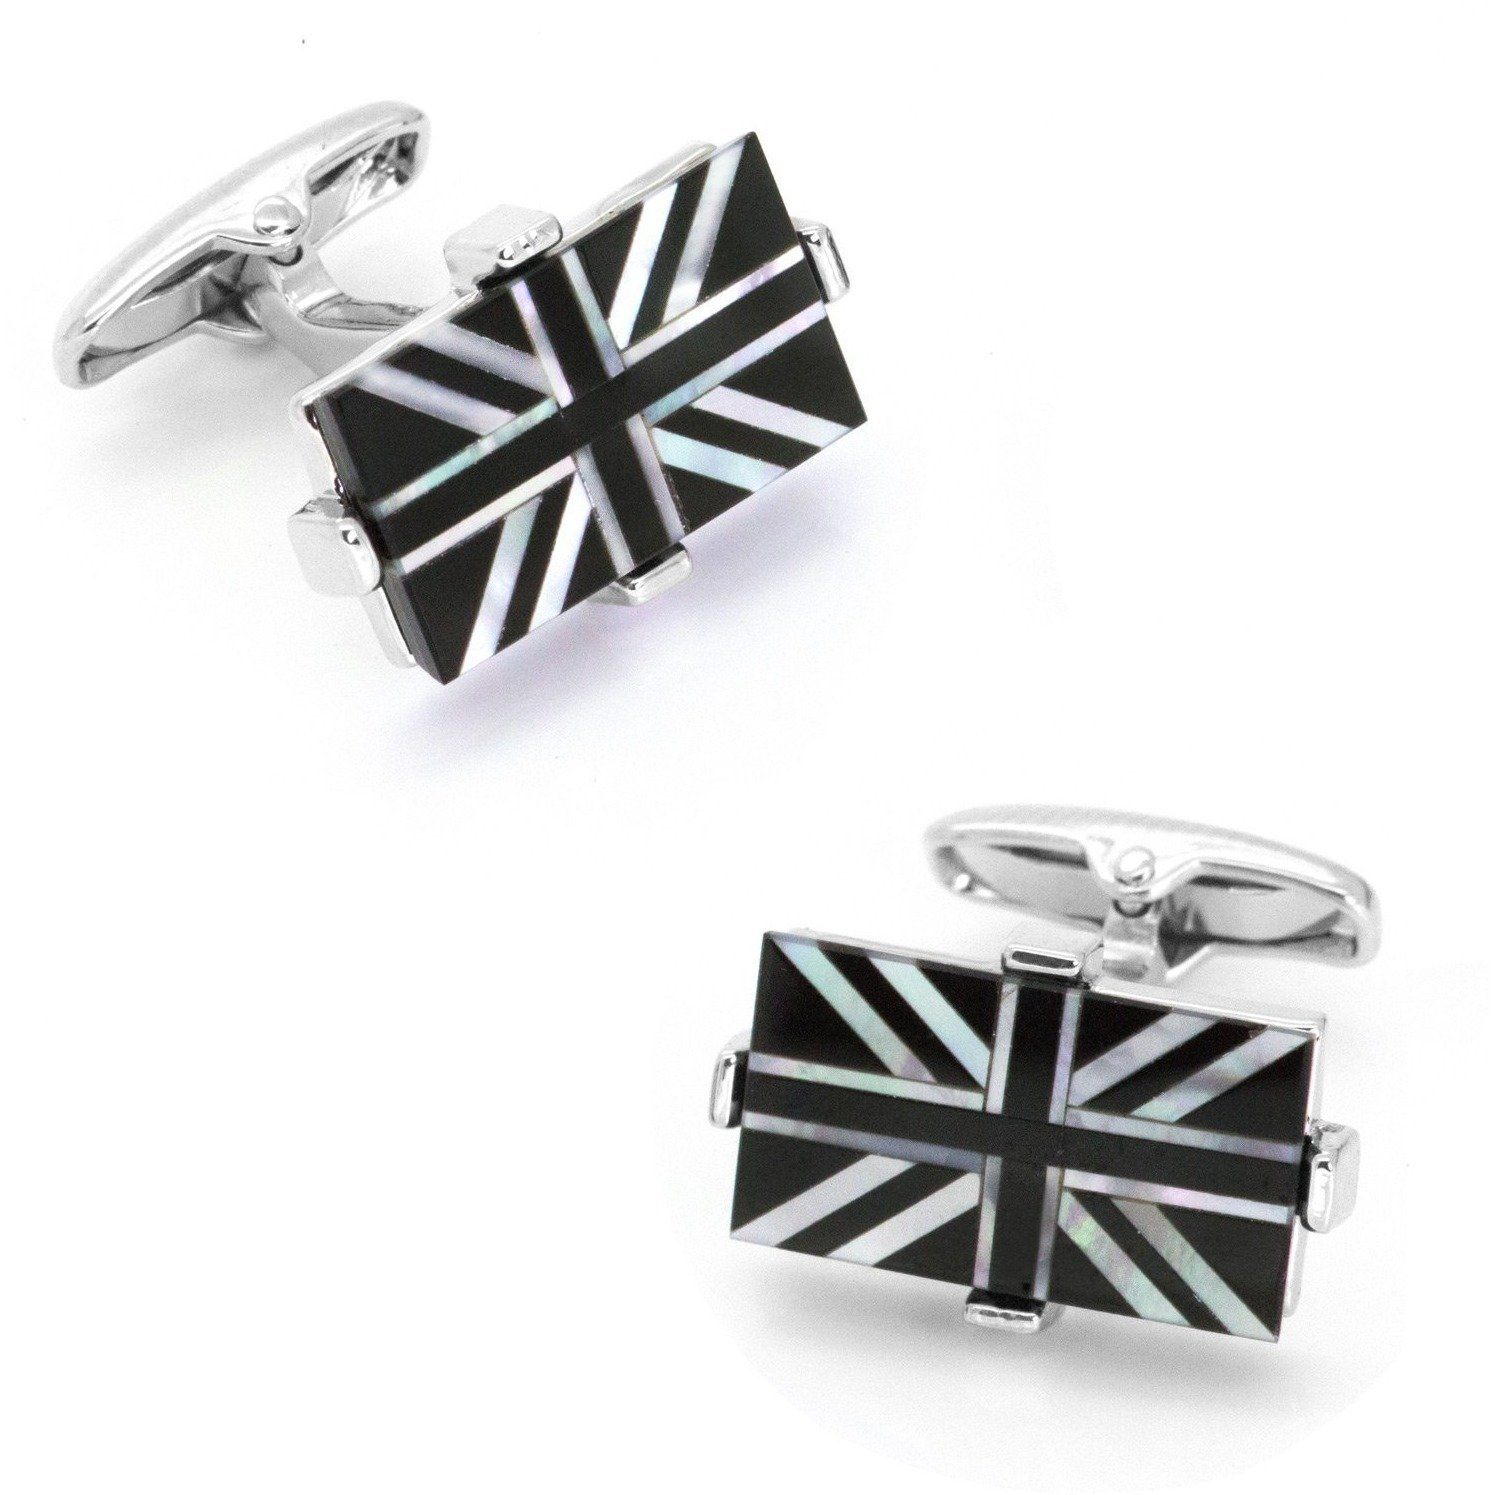 Union Jack - Flag of United Kingdom Cufflinks - Onyx & Mother of Pearl Novelty Cufflinks Clinks Australia